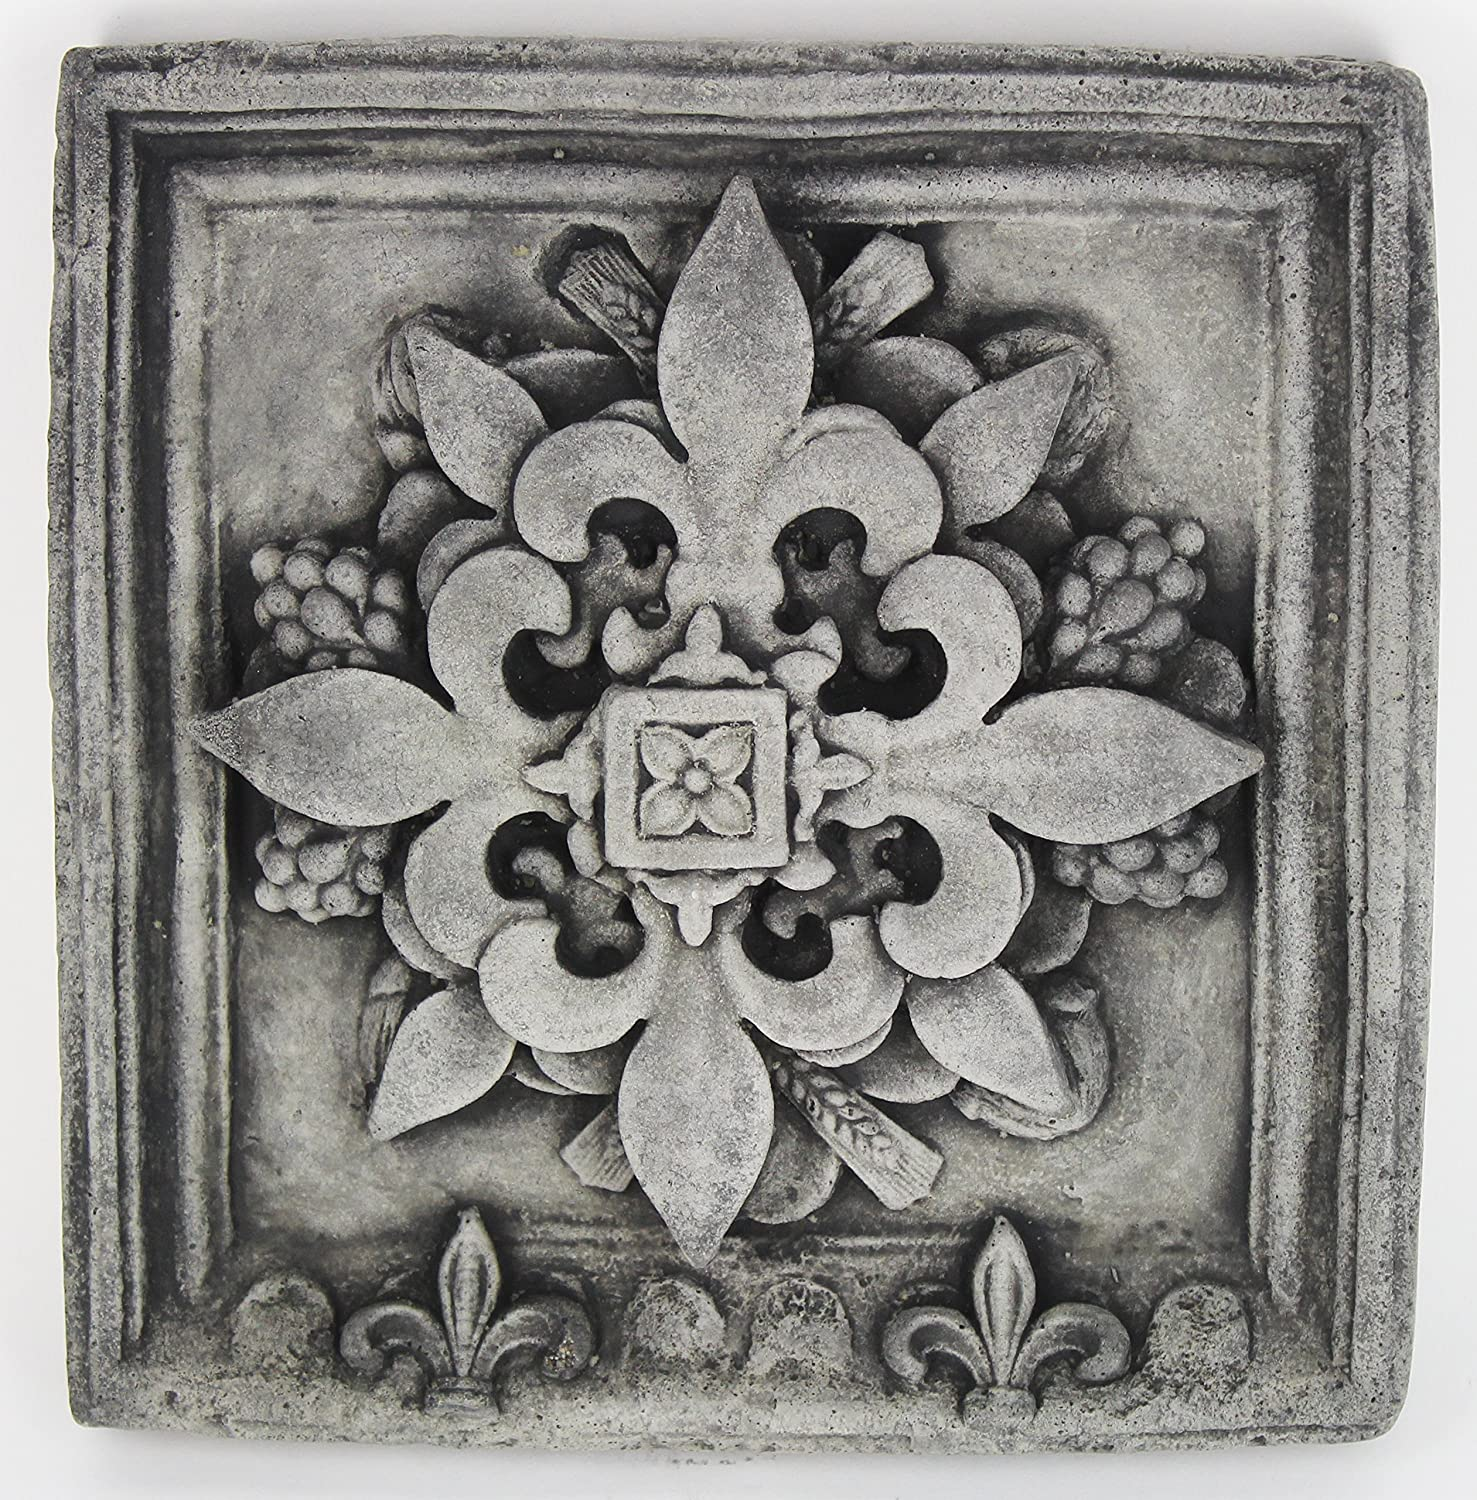 French Wall Plaques Home Decor from images-na.ssl-images-amazon.com